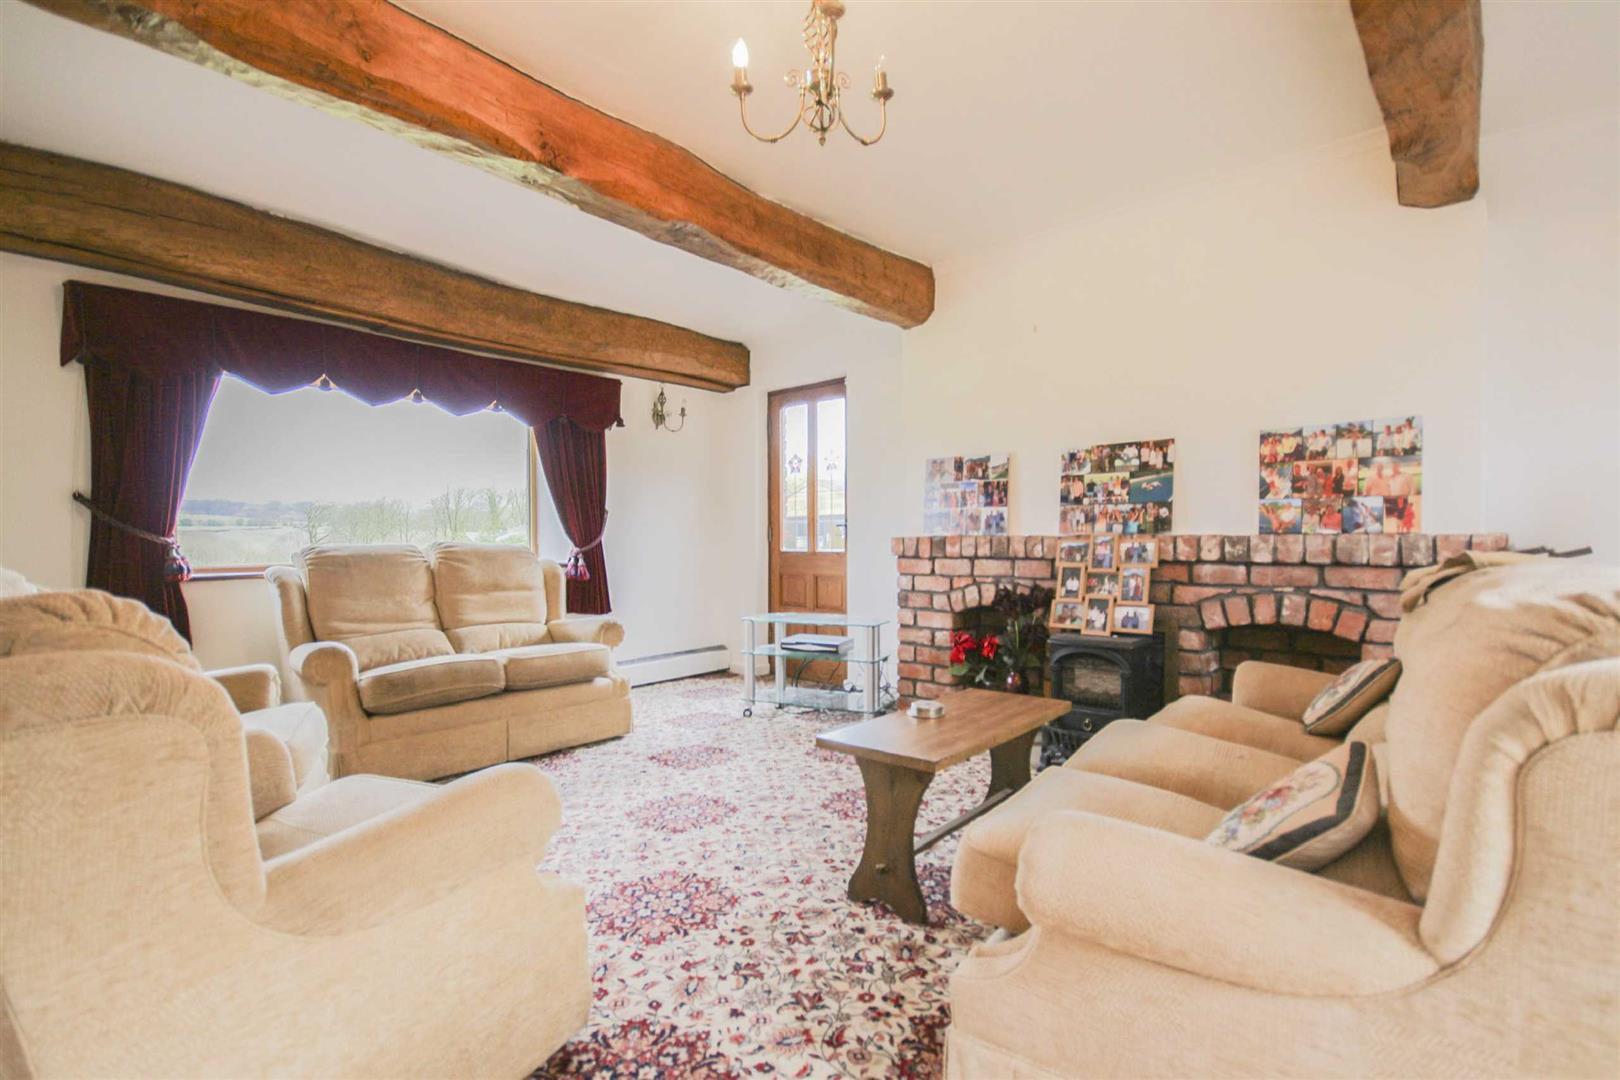 3 Bedroom Barn Conversion For Sale - Image 4